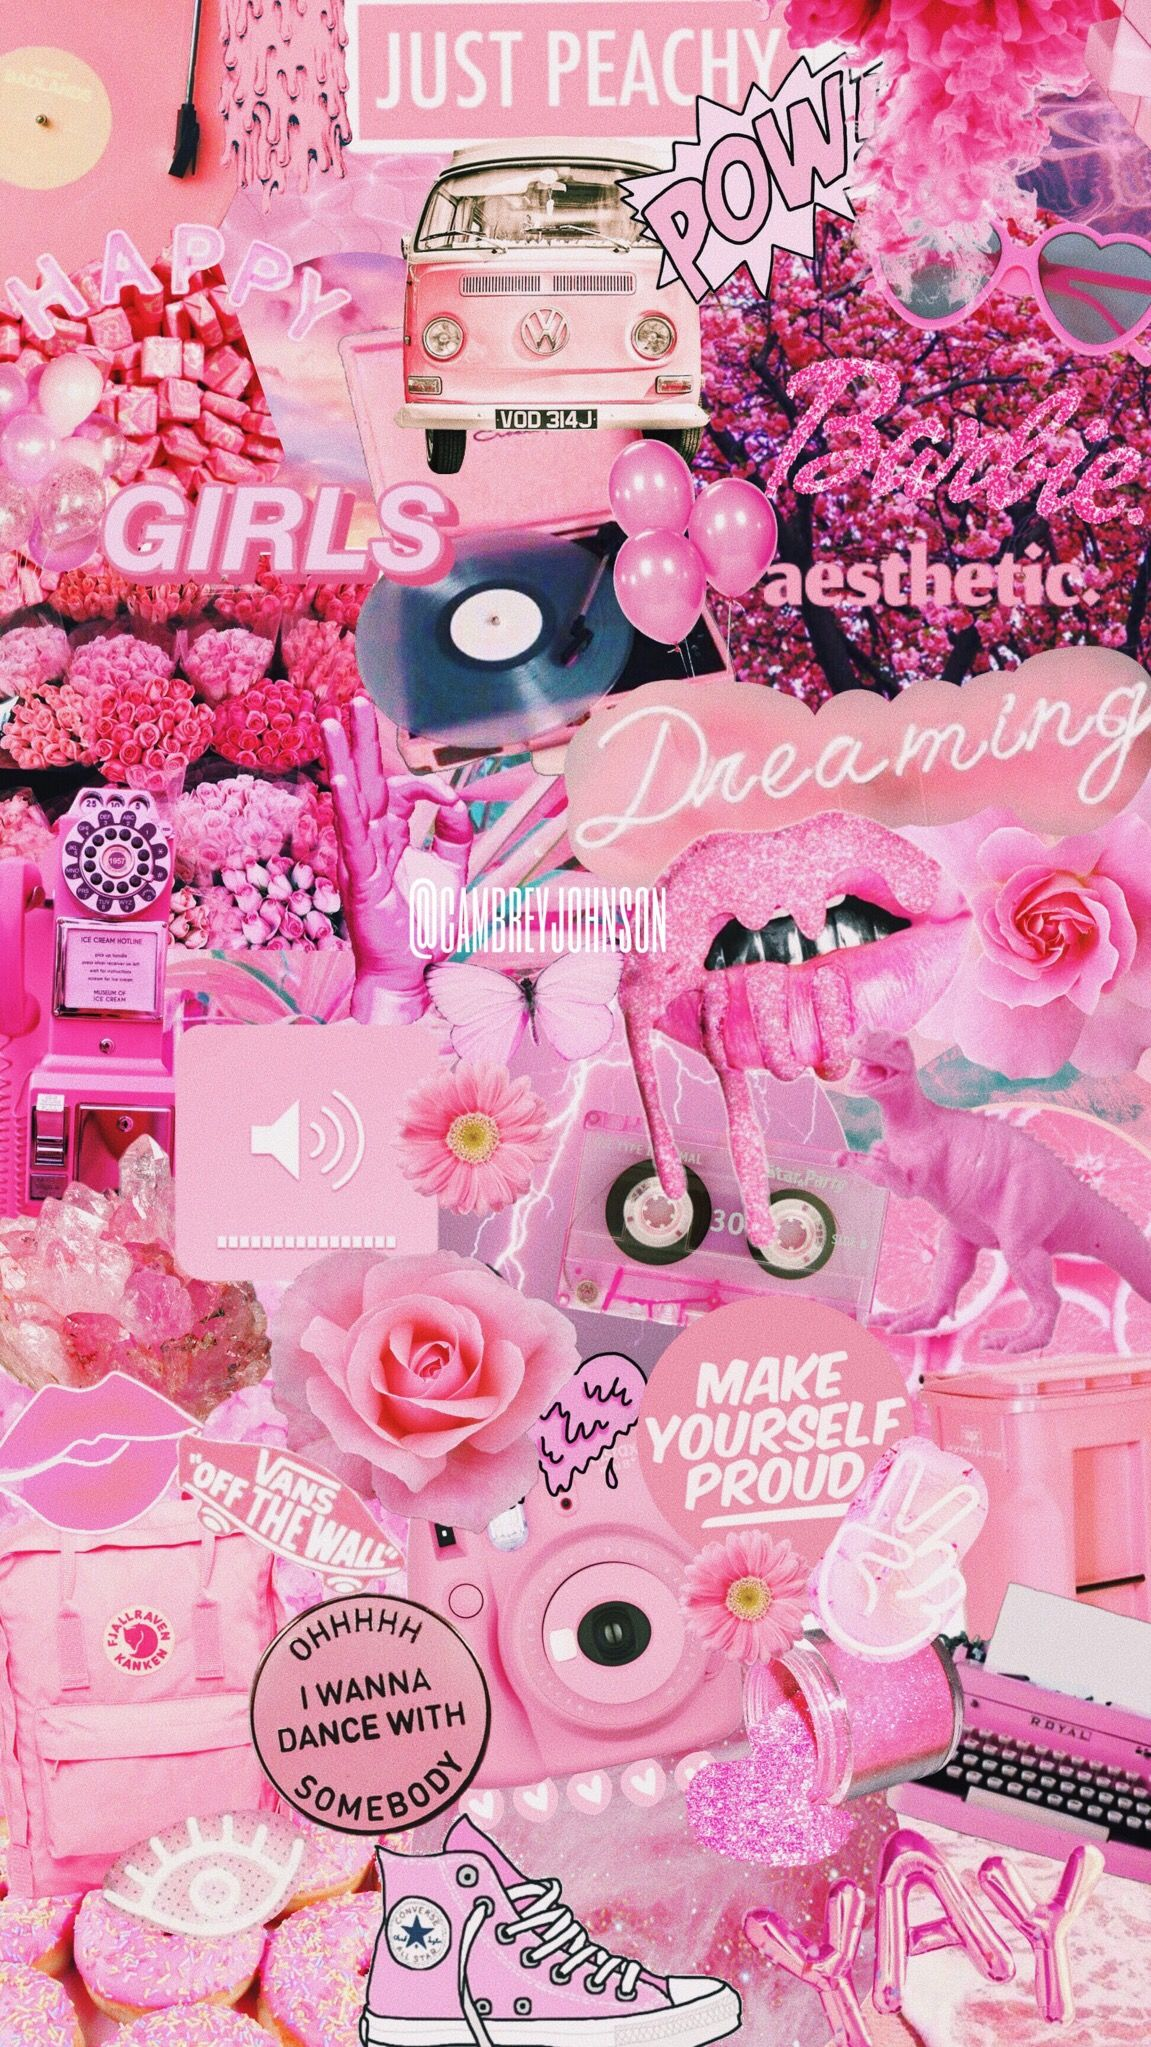 Vsco Cambreyjohnson Images Pink Wallpaper Iphone Aesthetic Iphone Wallpaper Iphone Wallpaper Vsco